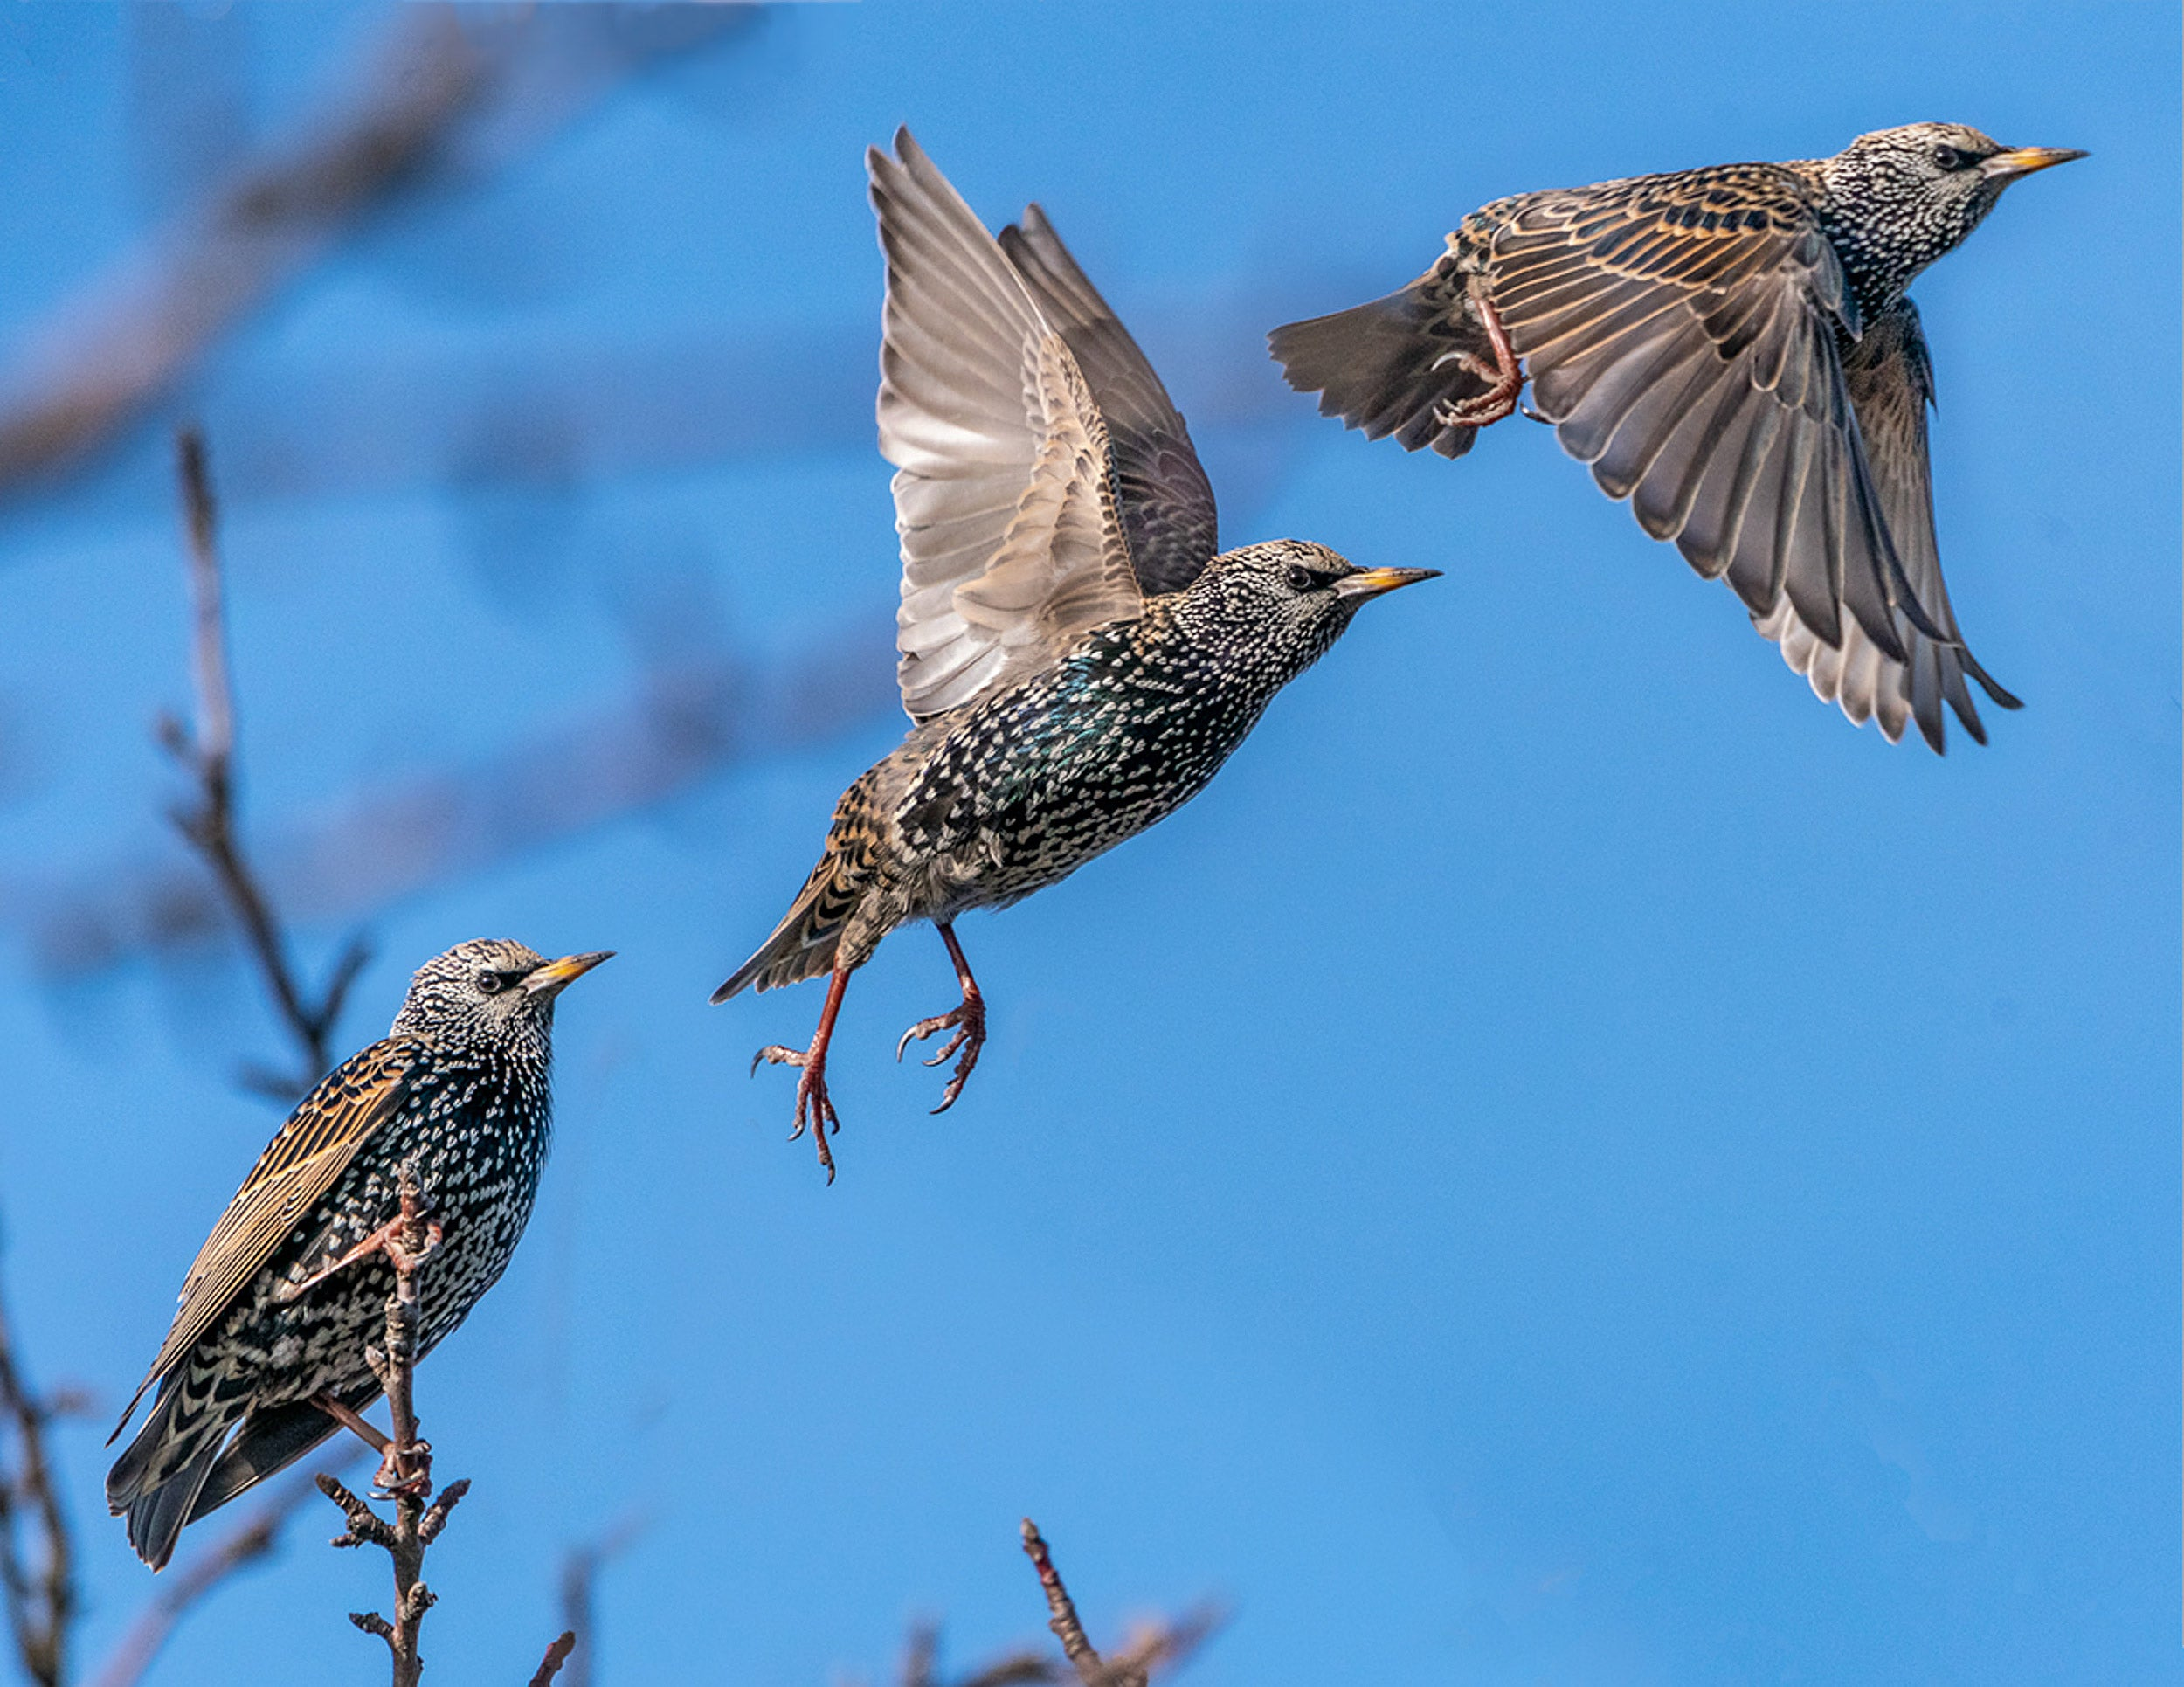 European starling in flight.